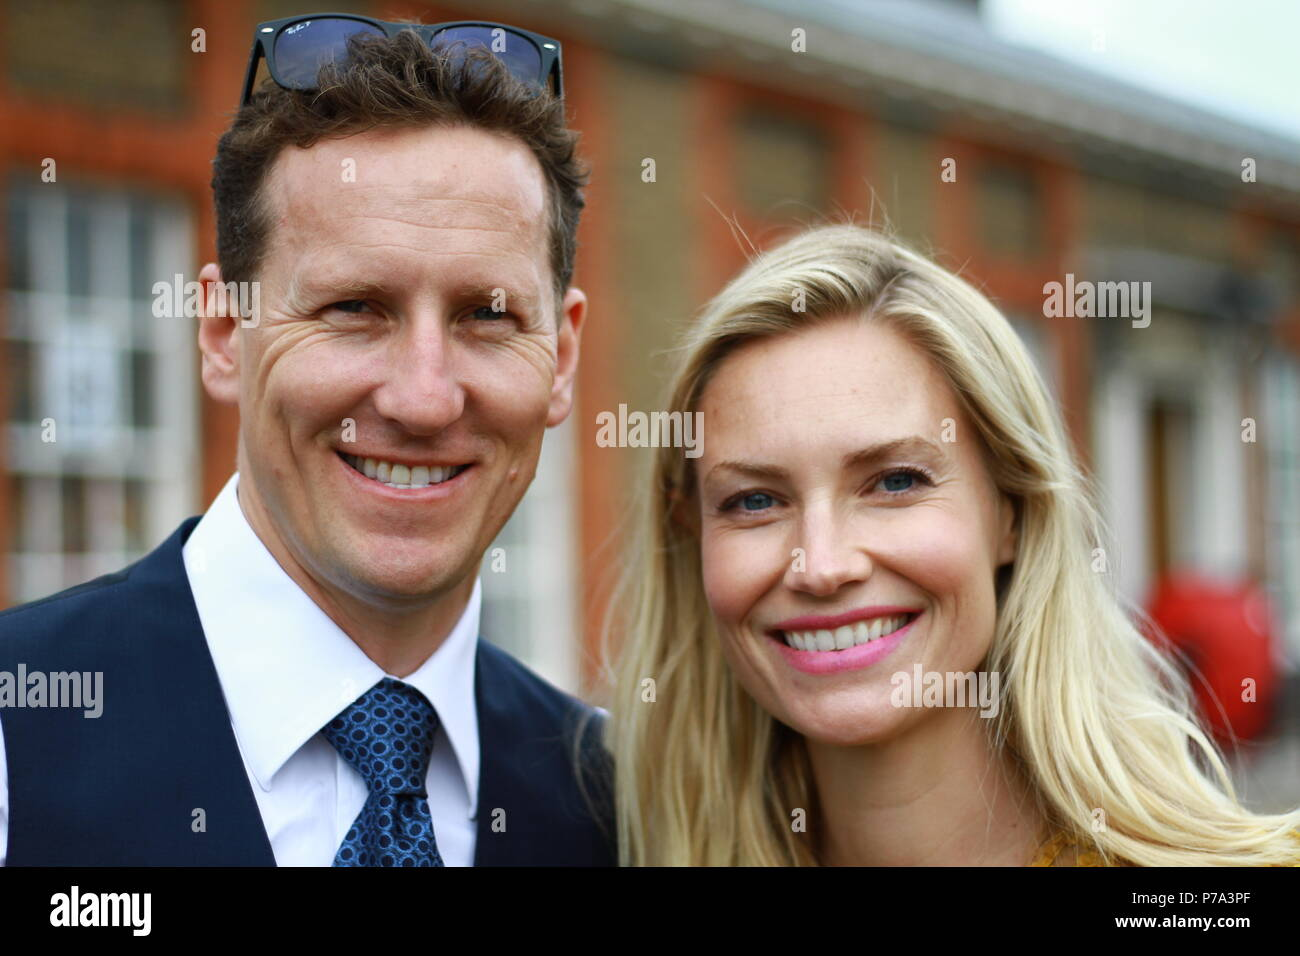 Brendon Cole and his Wife Zoe Hobbs attending The RHS Chelsea flower show on press day on 21st May 2018. - Stock Image